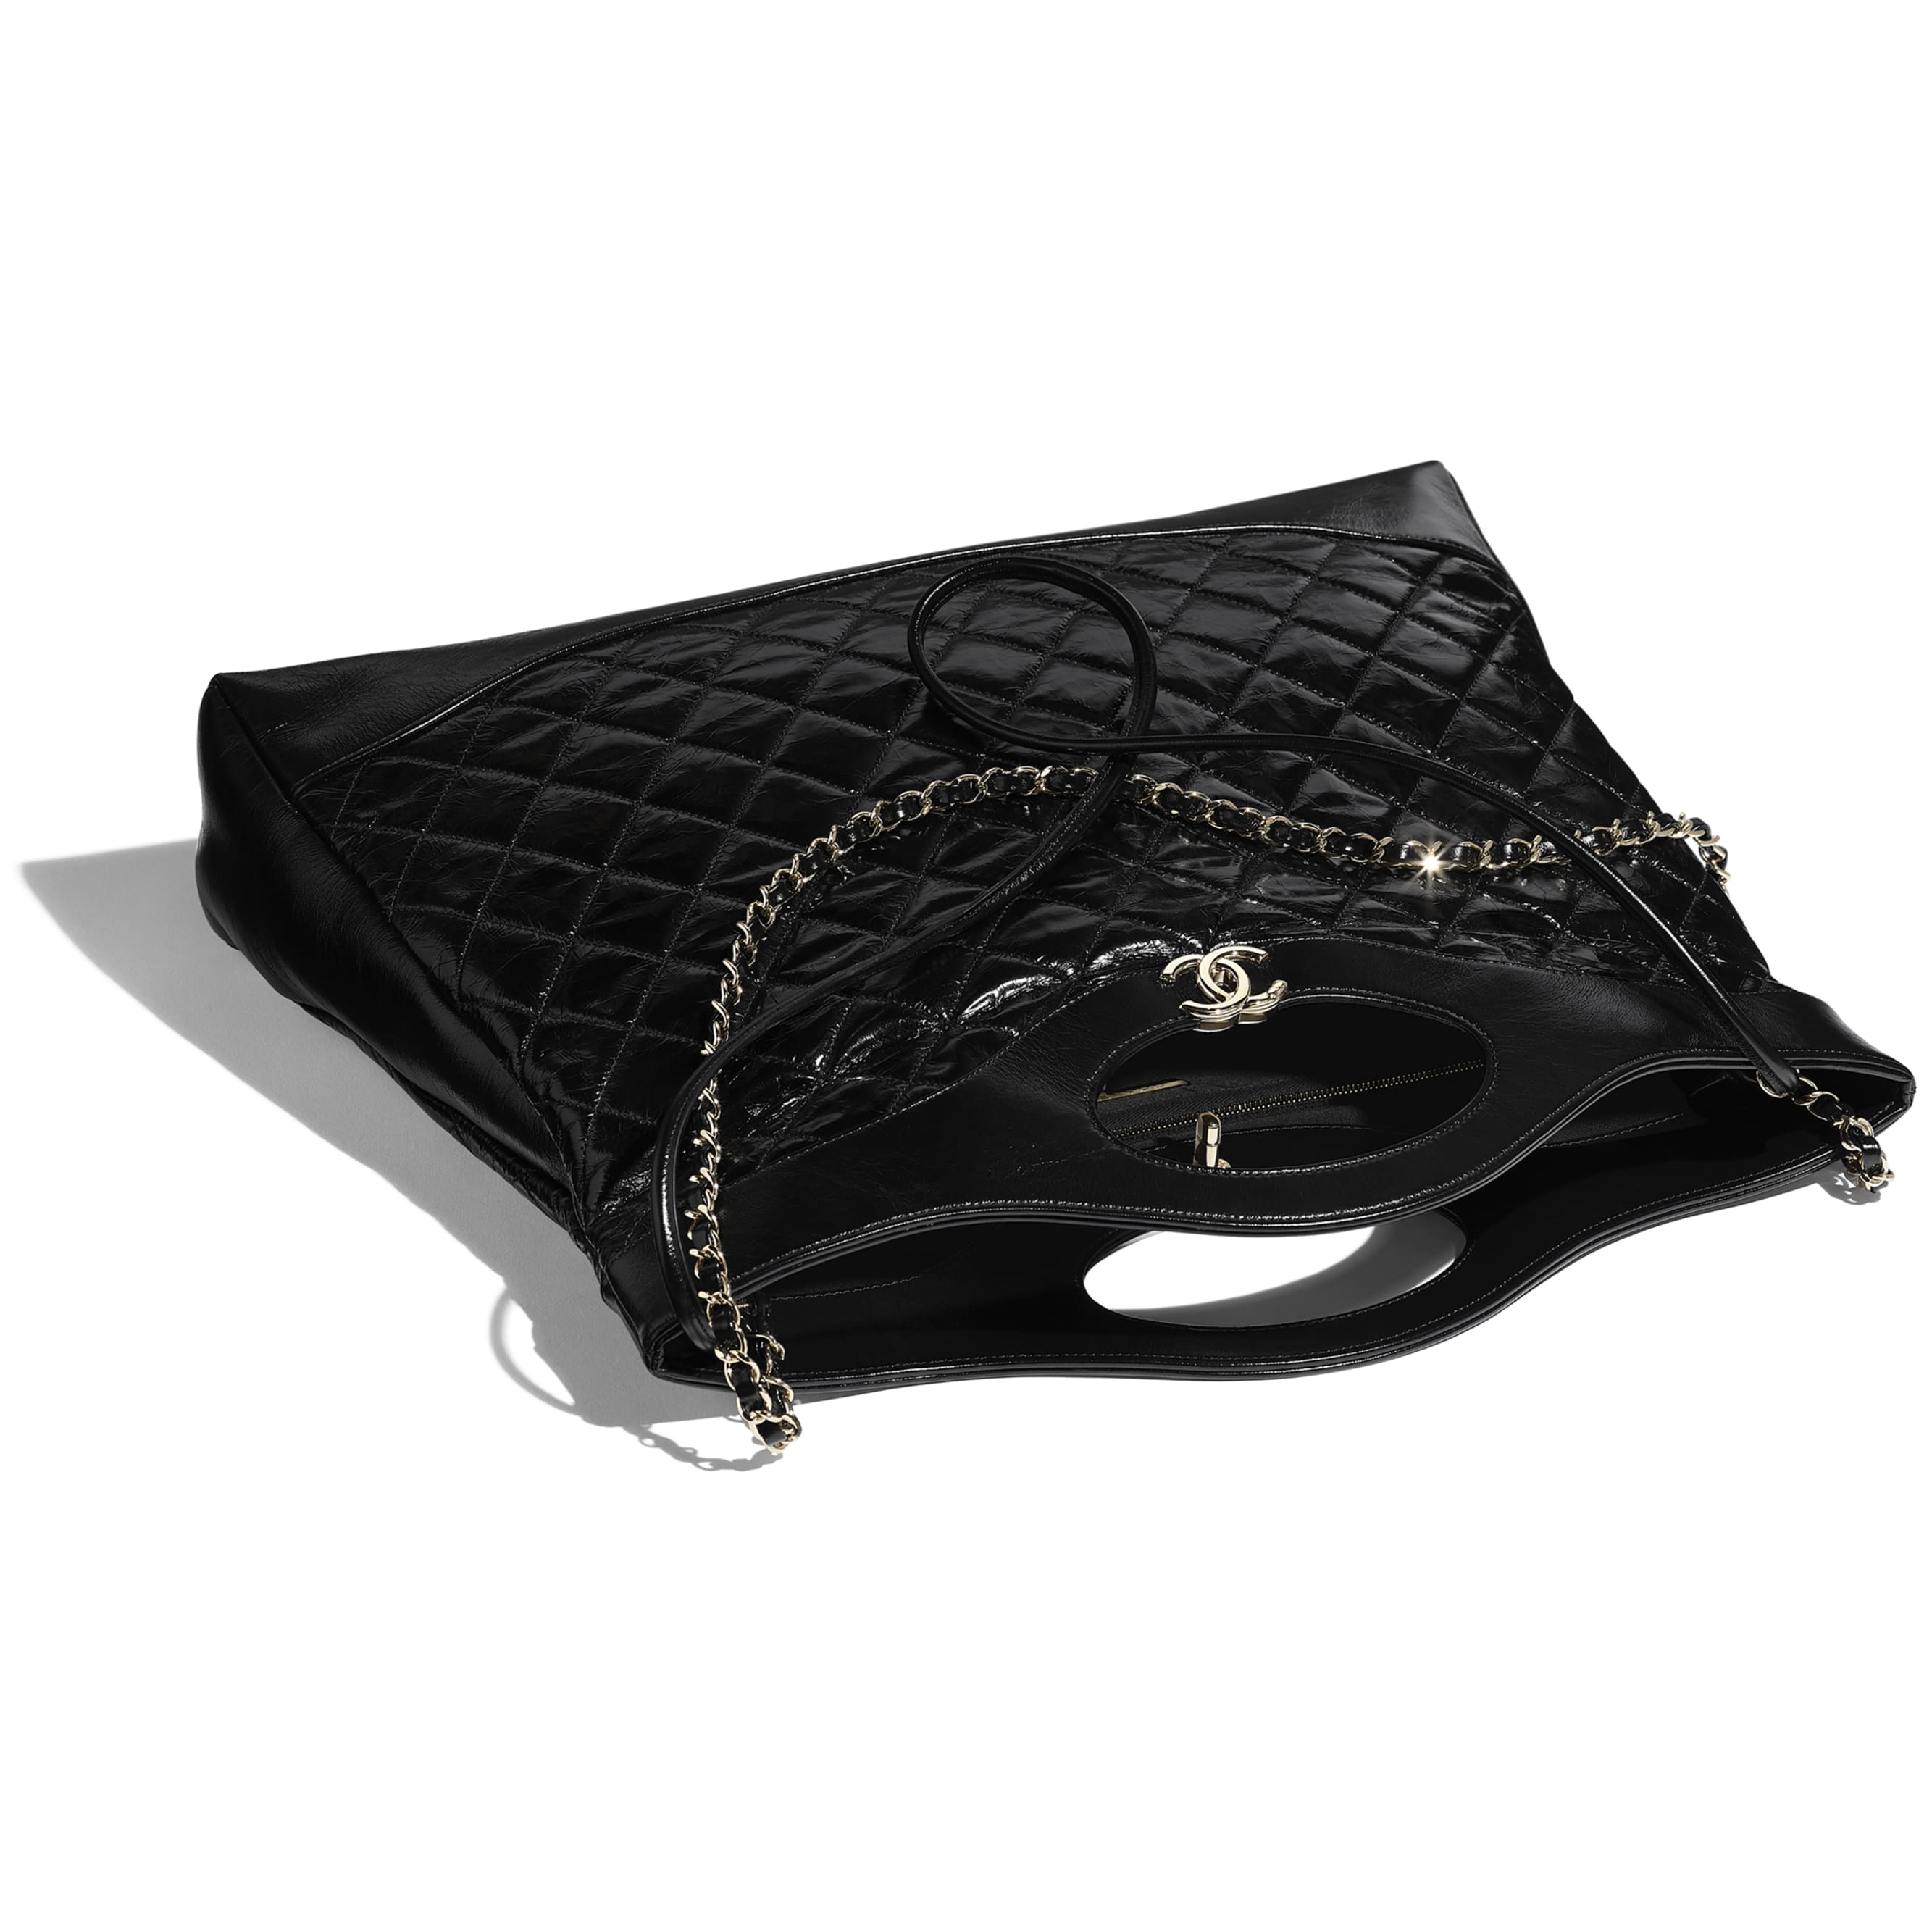 CHANEL 31 Large Shopping Bag - Black - Shiny Crumpled Calfskin & Gold-Tone Metal - Other view - see standard sized version